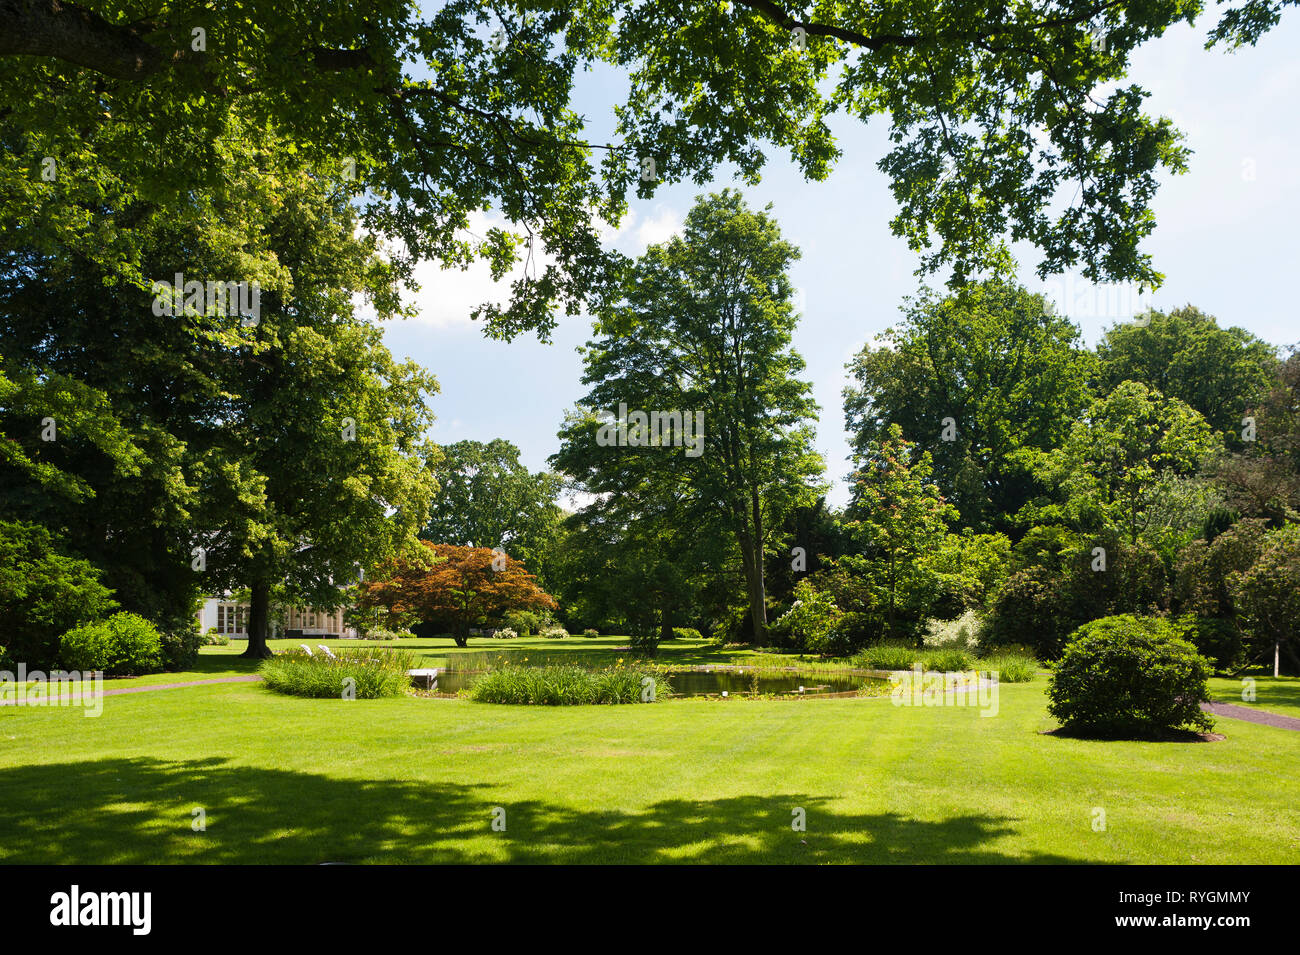 Lawn and trees around pond - Stock Image